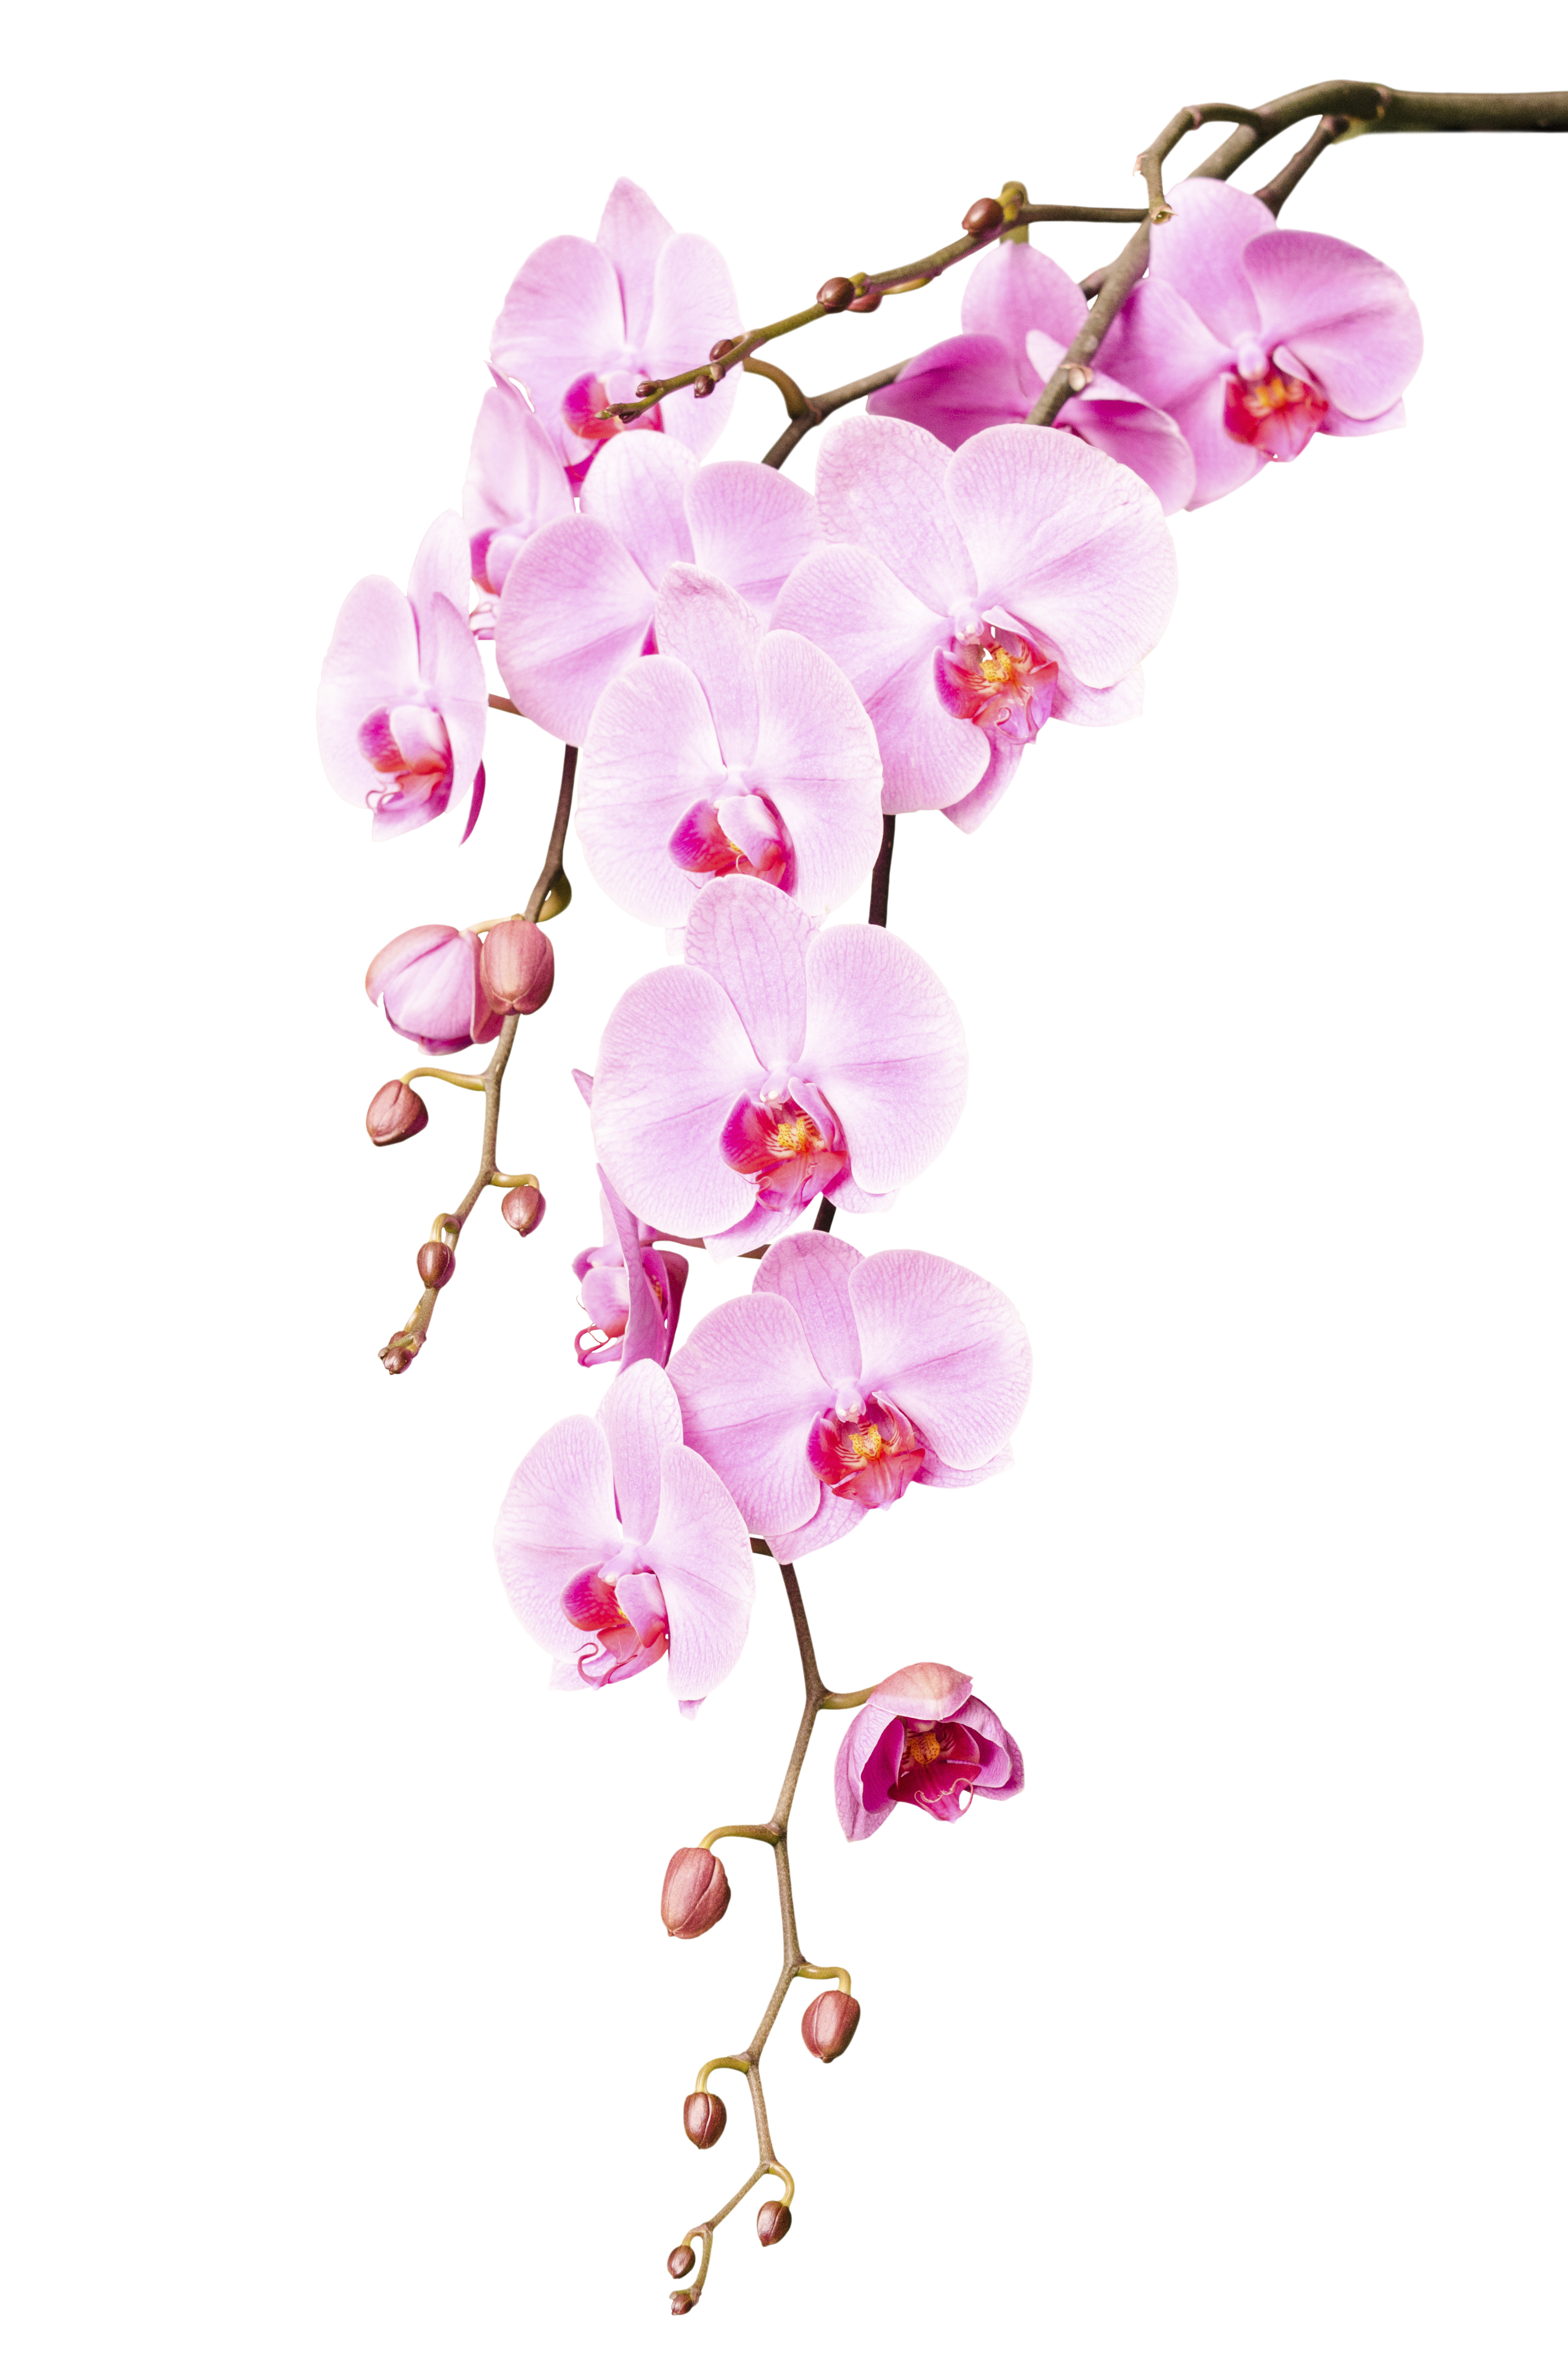 Home grown beauty william pitt sothebys realty the orchid symbolizes more than just a beautiful blooming flower that appears to be floating on air since ancient times this lovely blossom has been known izmirmasajfo